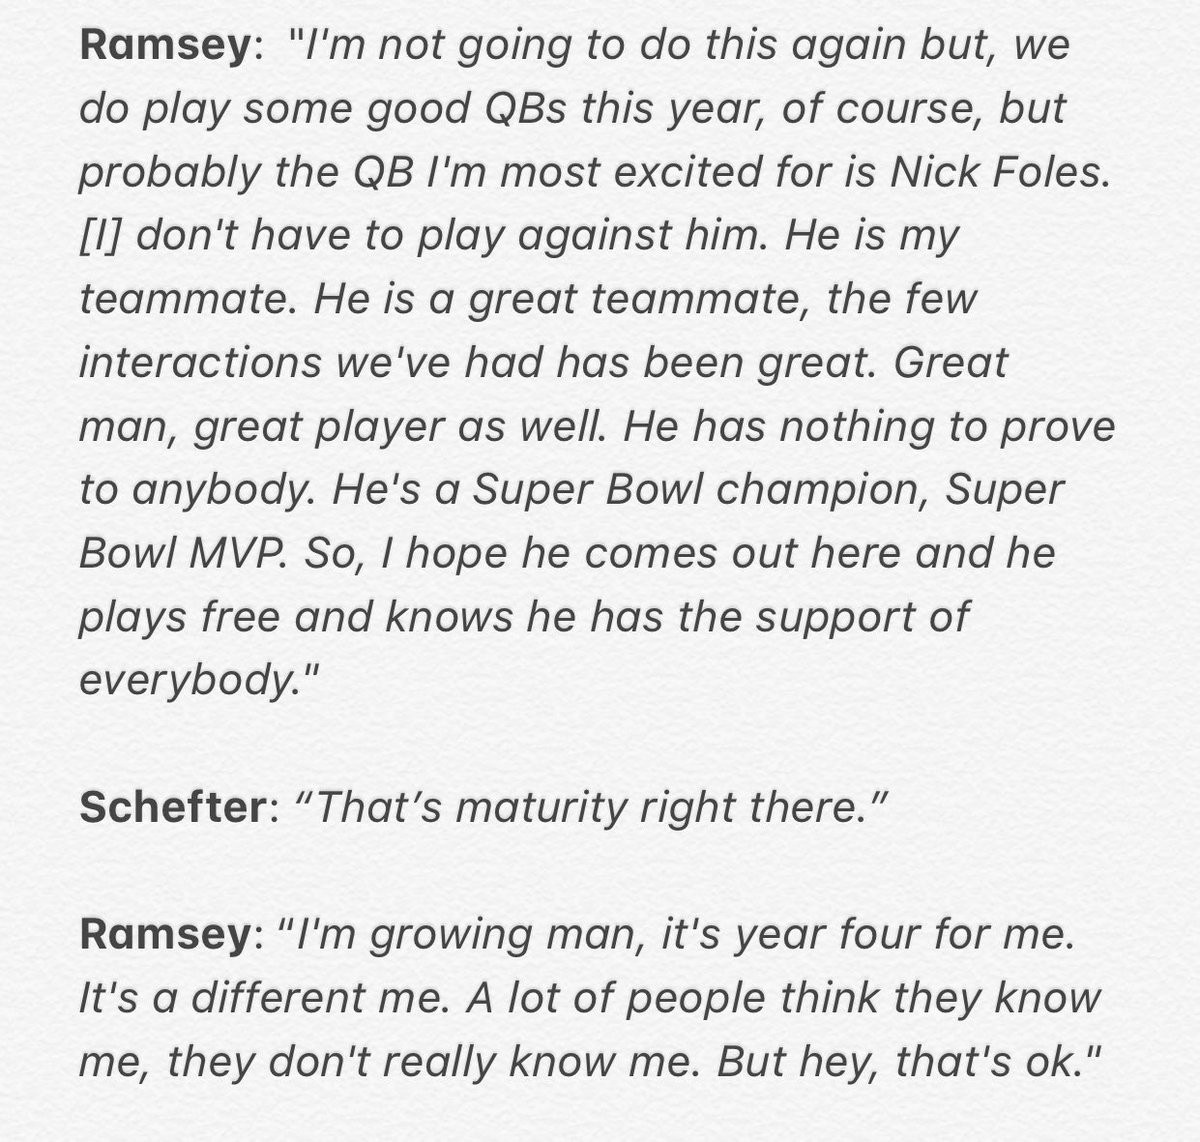 Last August, Jalen Ramsey did an interview with @GQMagazine and trashed a number of NFL QBs.   When asked on the @AdamSchefter podcast to breakdown QBs he'll face this year, Ramsey had this mature answer: